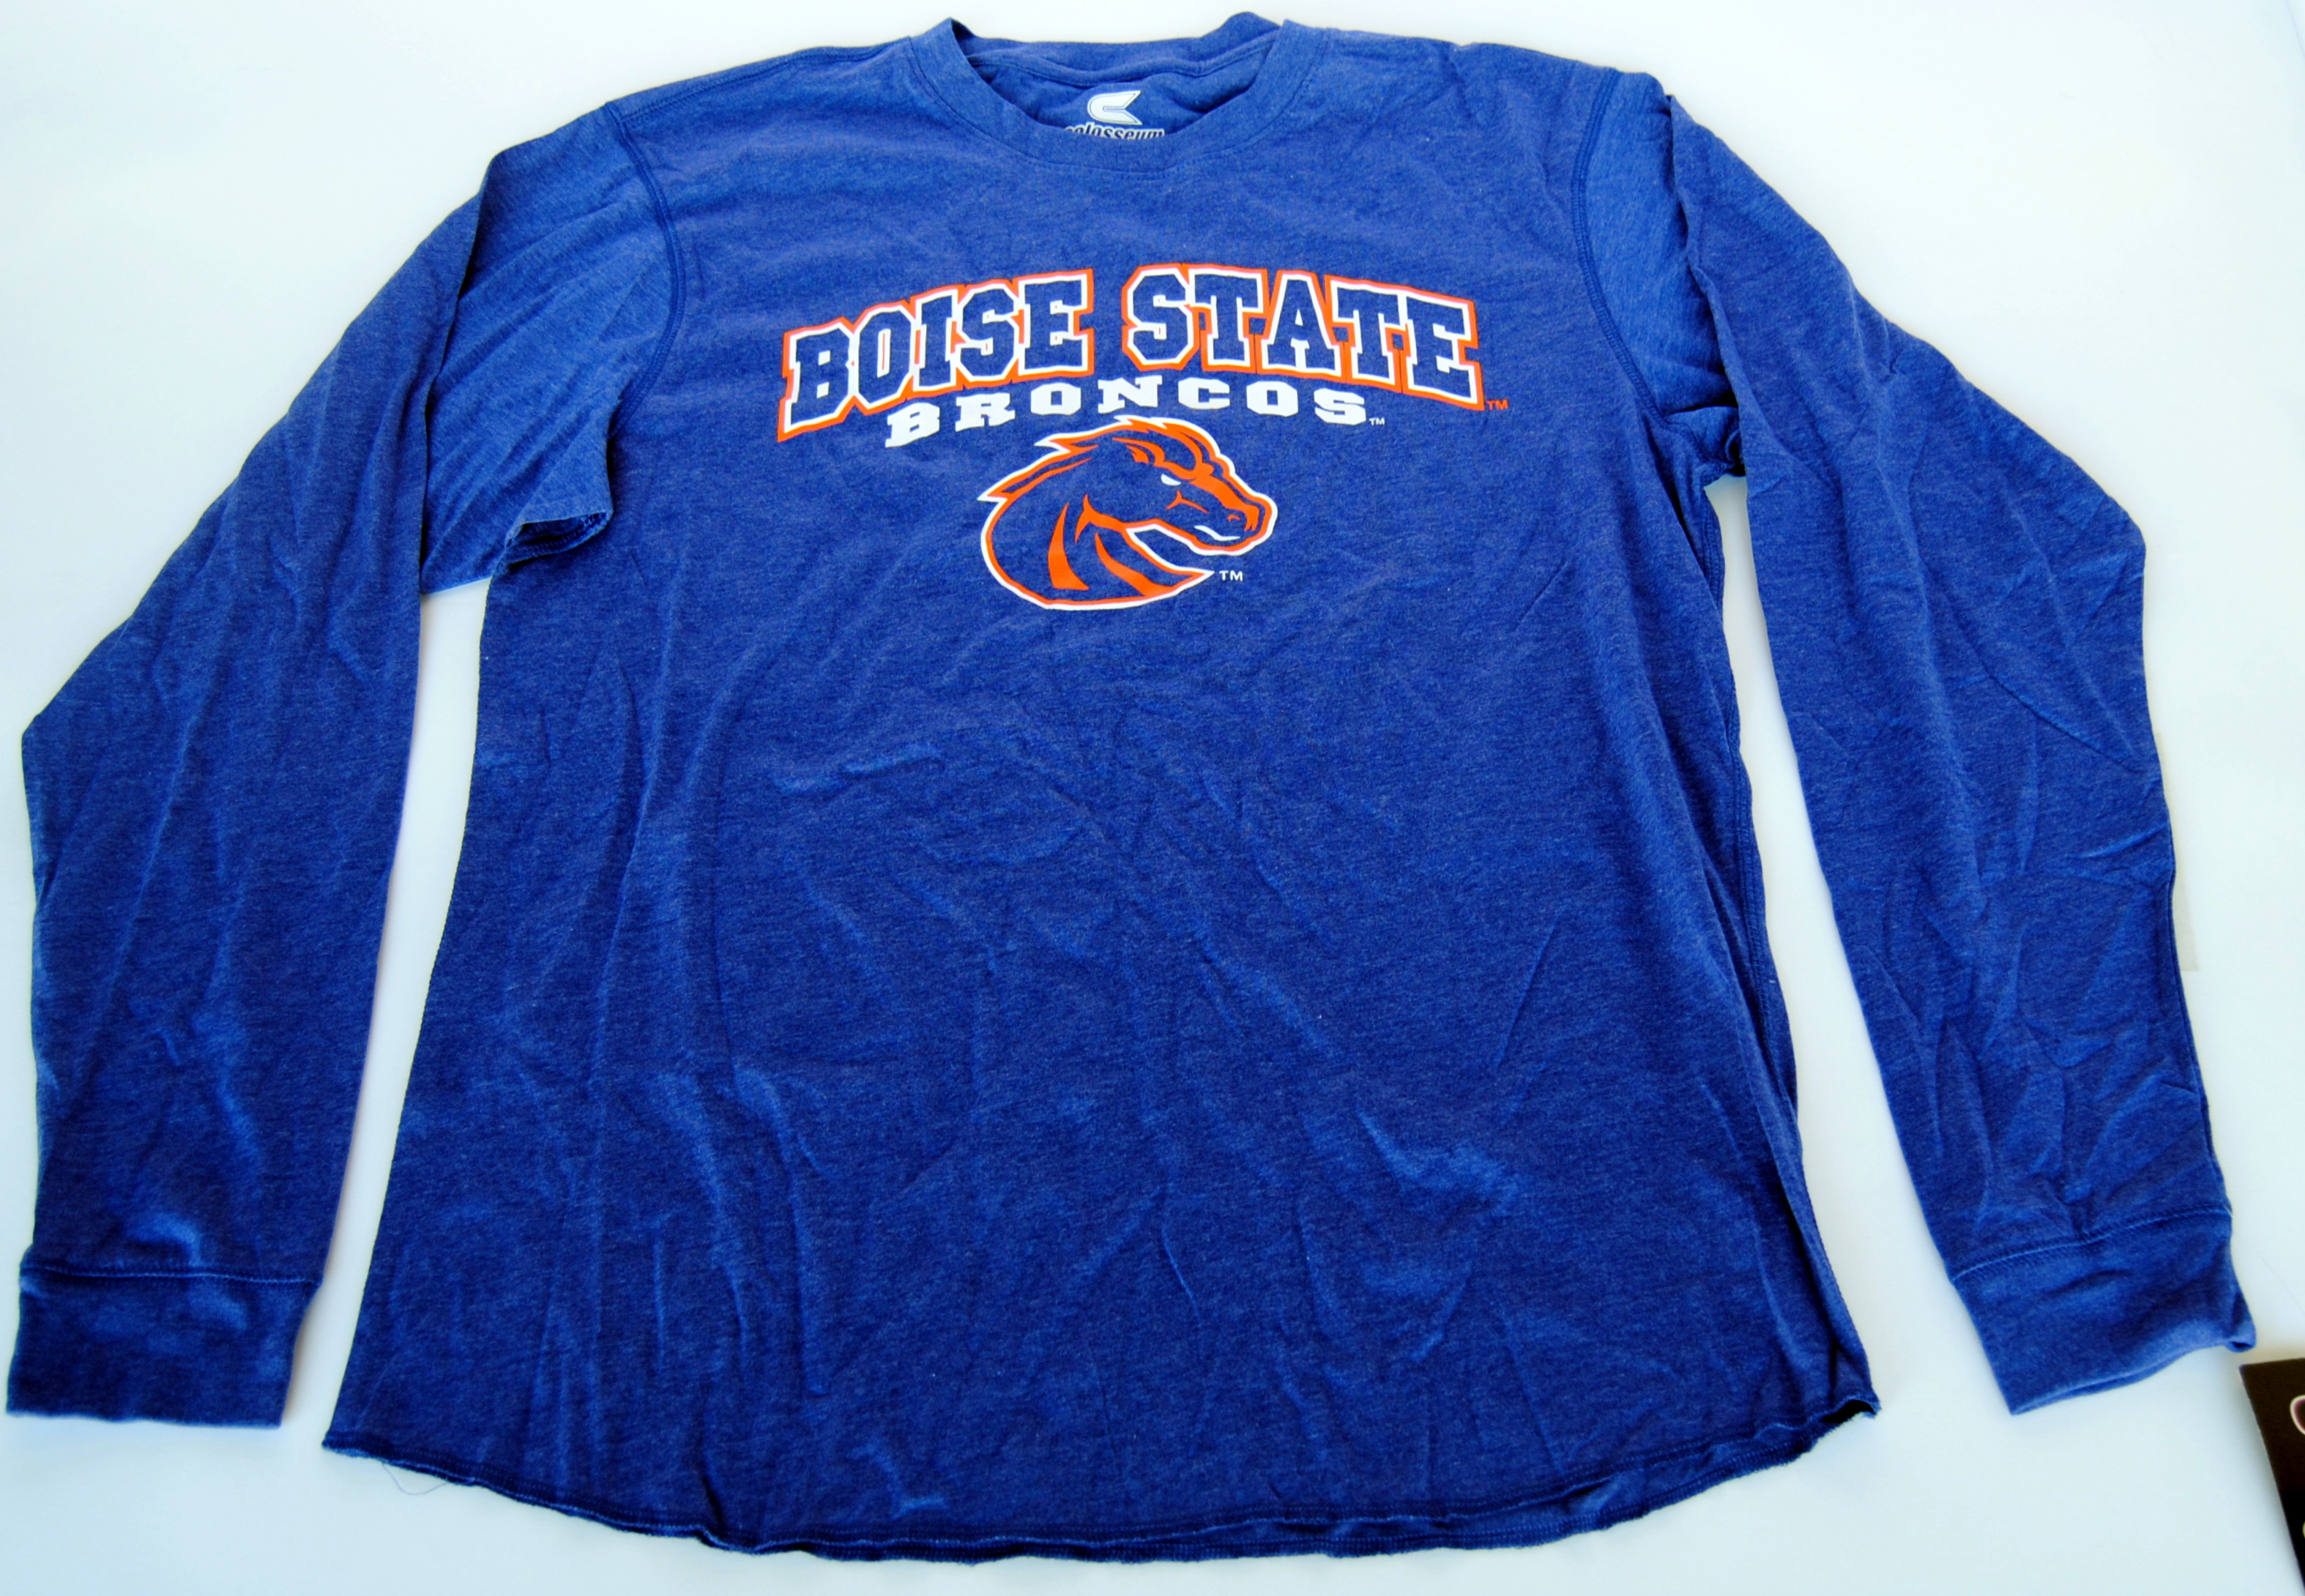 Colosseum Athletics Boise State Broncos Colosseum Athletics Blue Long Sleeve T-Shirt (L) at Sears.com